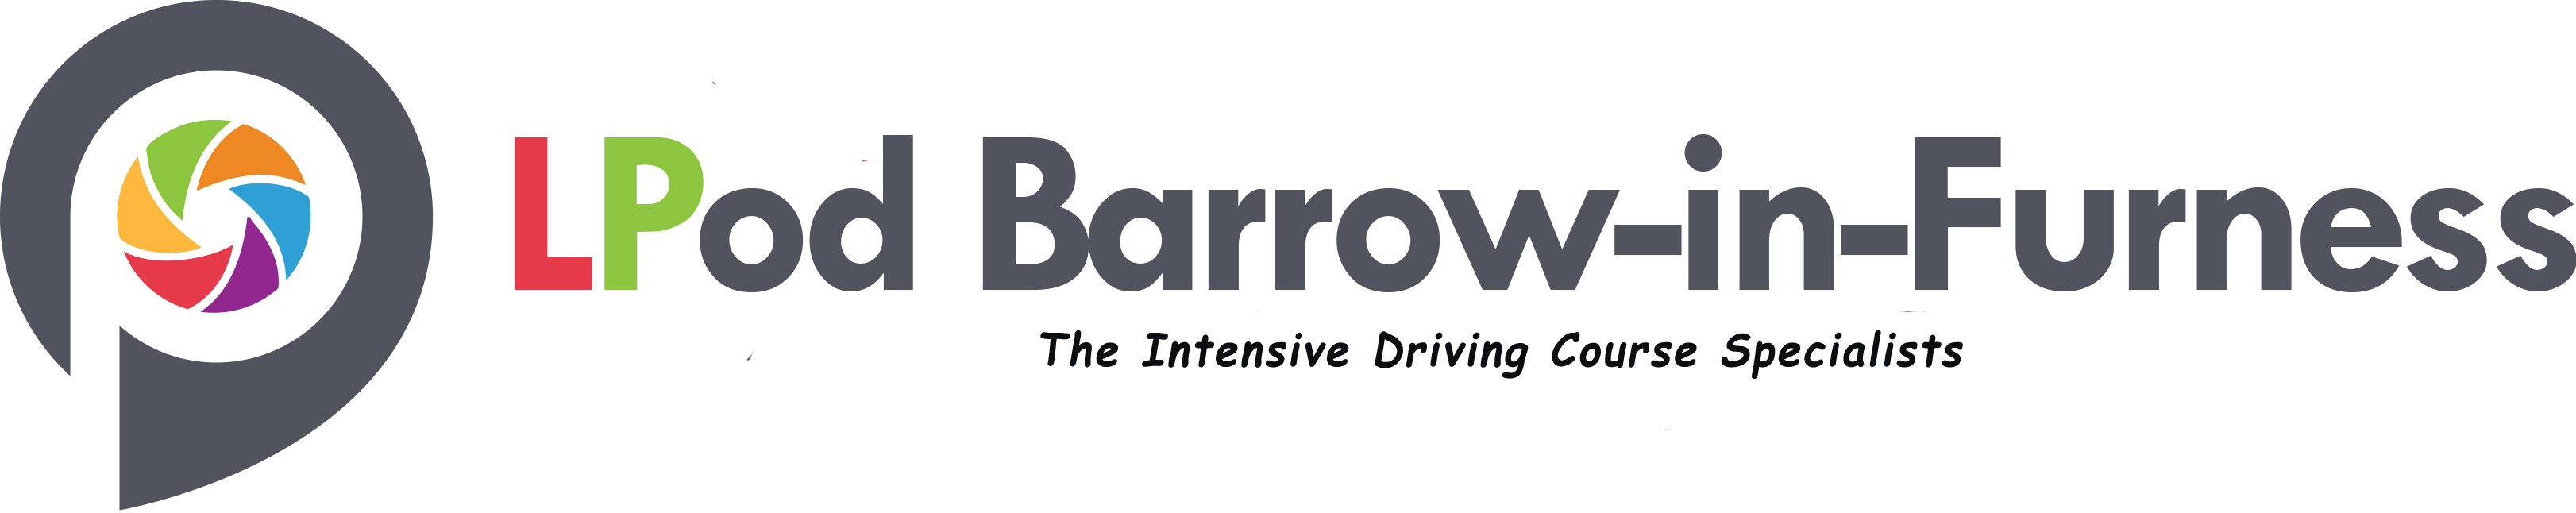 intensive driving courses in Barrow-in-Furness